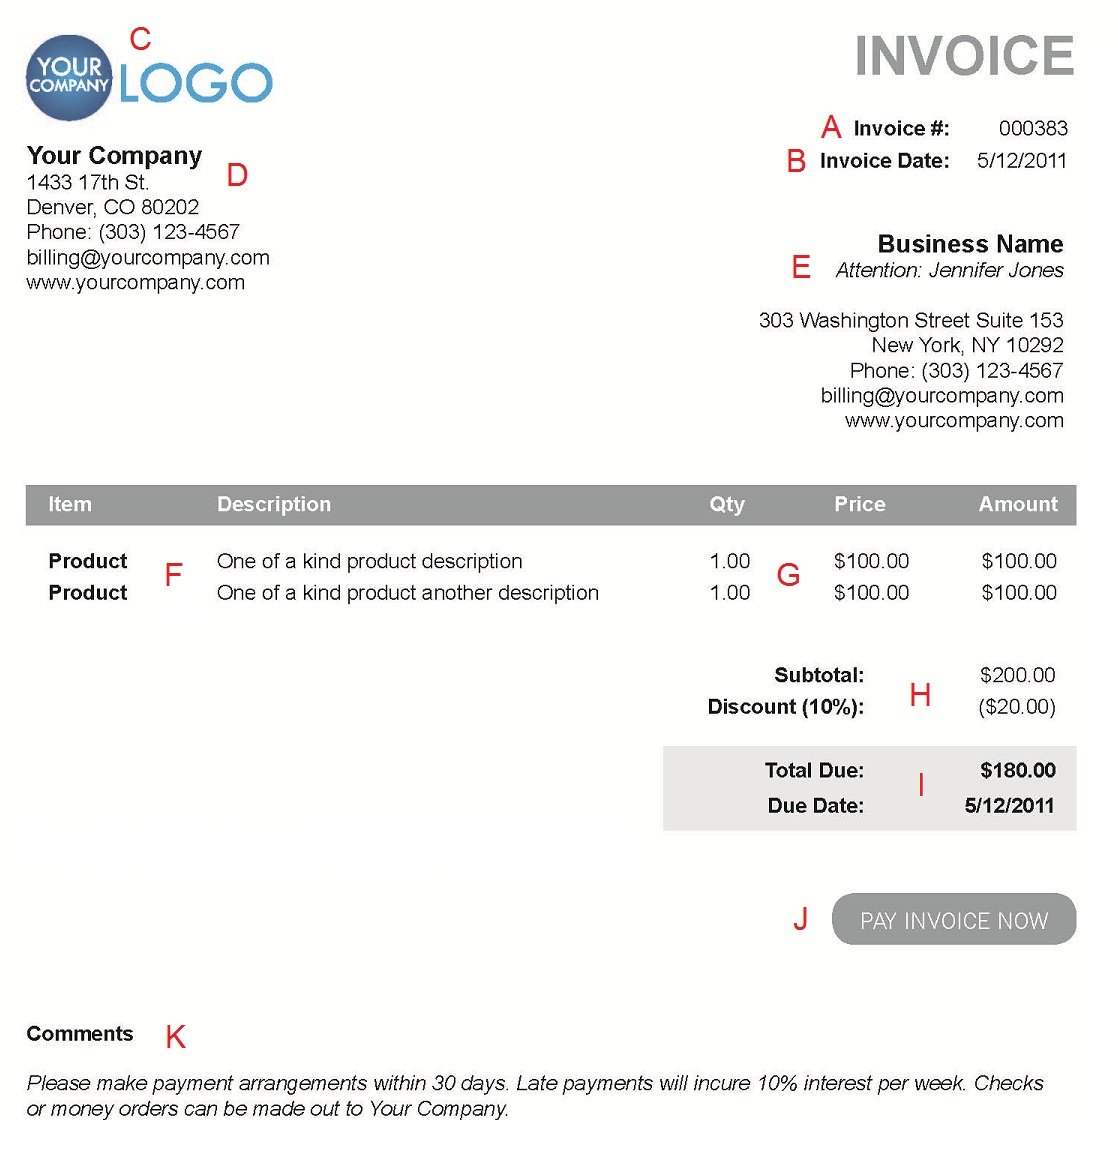 Pxworkoutfreeus  Stunning The  Different Sections Of An Electronic Payment Invoice With Exciting A  With Beauteous Contractor Invoice Sample Also Tow Truck Invoice In Addition Factory Invoice Price Vs Msrp And What Does Fob Mean On An Invoice As Well As Past Due Invoice Letter Template Additionally Dealer Invoice Price Ford From Paysimplecom With Pxworkoutfreeus  Exciting The  Different Sections Of An Electronic Payment Invoice With Beauteous A  And Stunning Contractor Invoice Sample Also Tow Truck Invoice In Addition Factory Invoice Price Vs Msrp From Paysimplecom